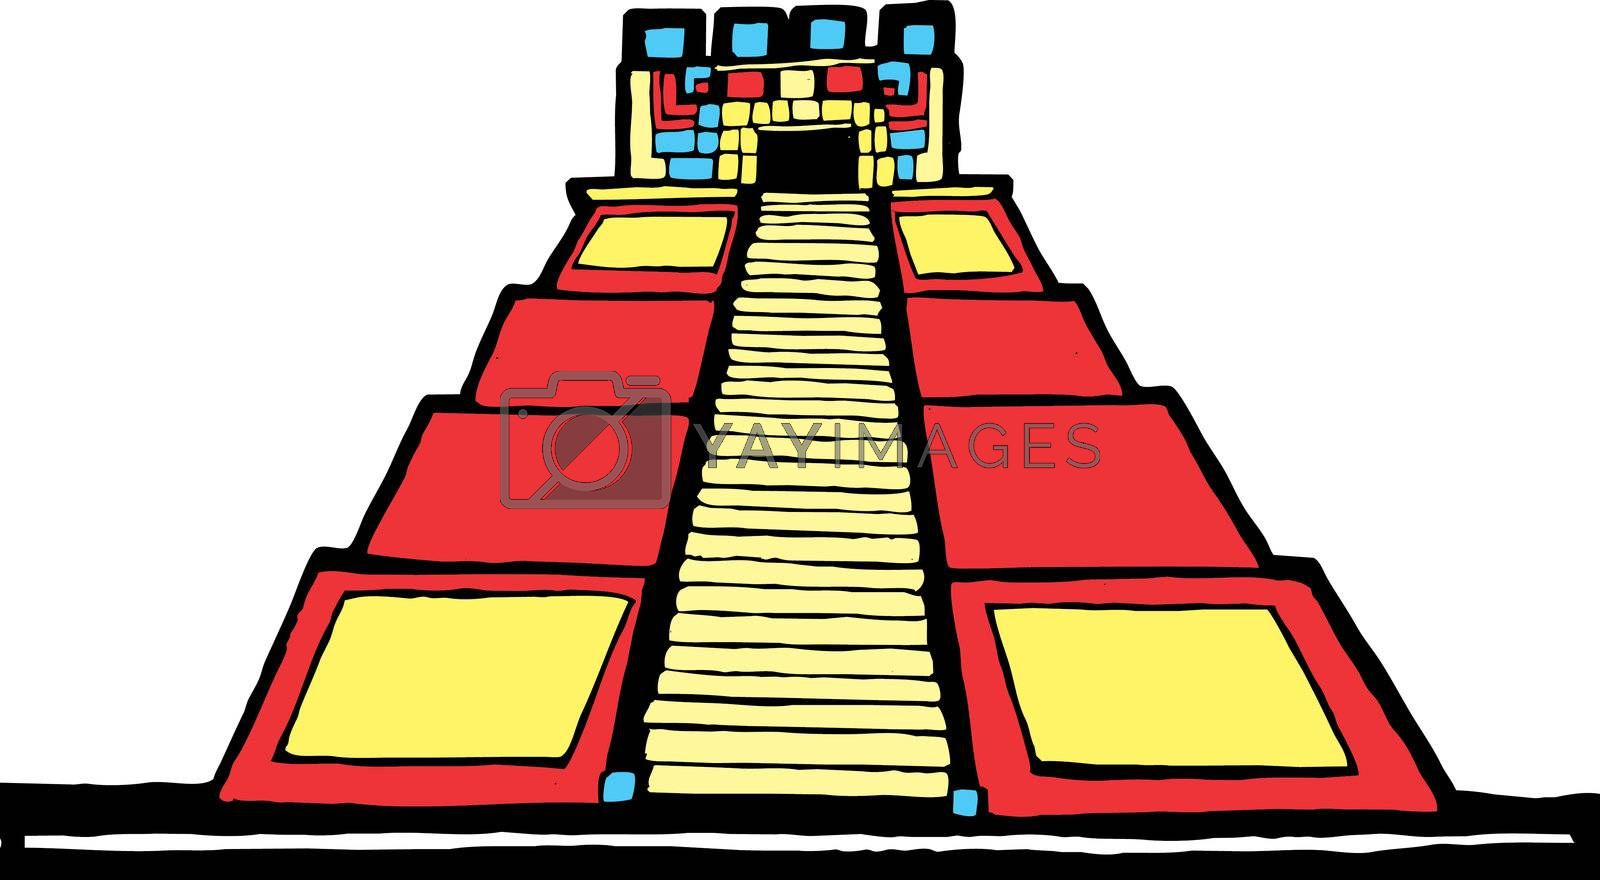 Mayan Pyramid designed after Mesoamerican Pottery and Temple Images.